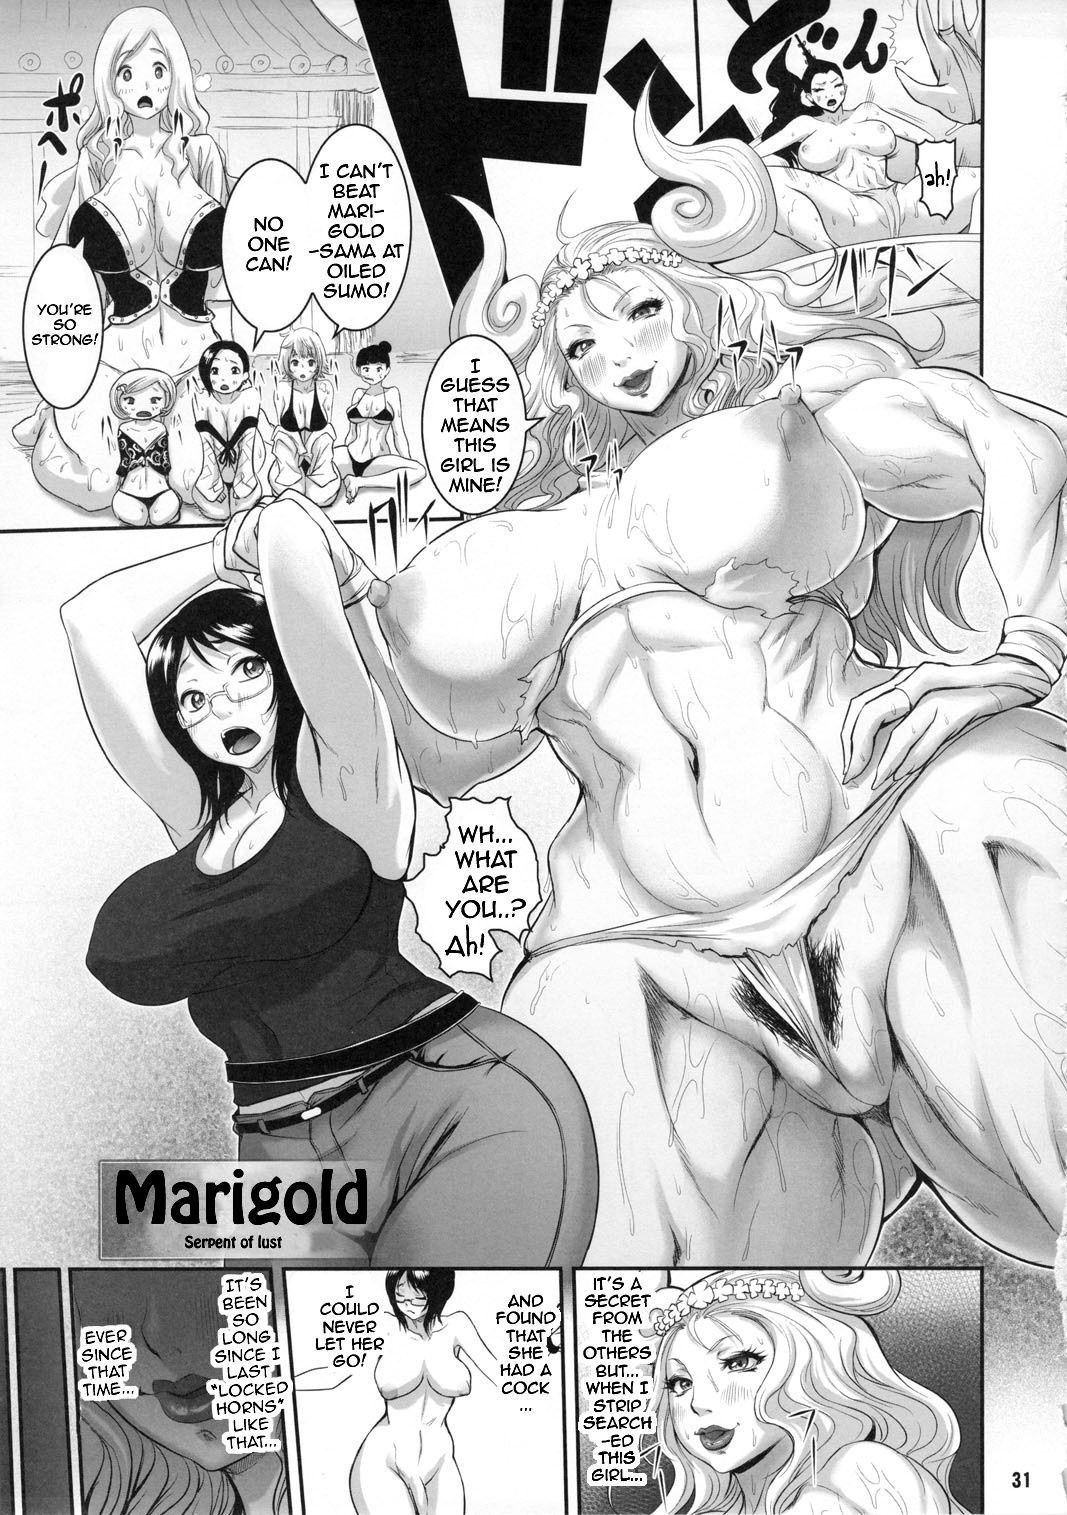 Bloom pirate hooker queen hentai manga picture 24